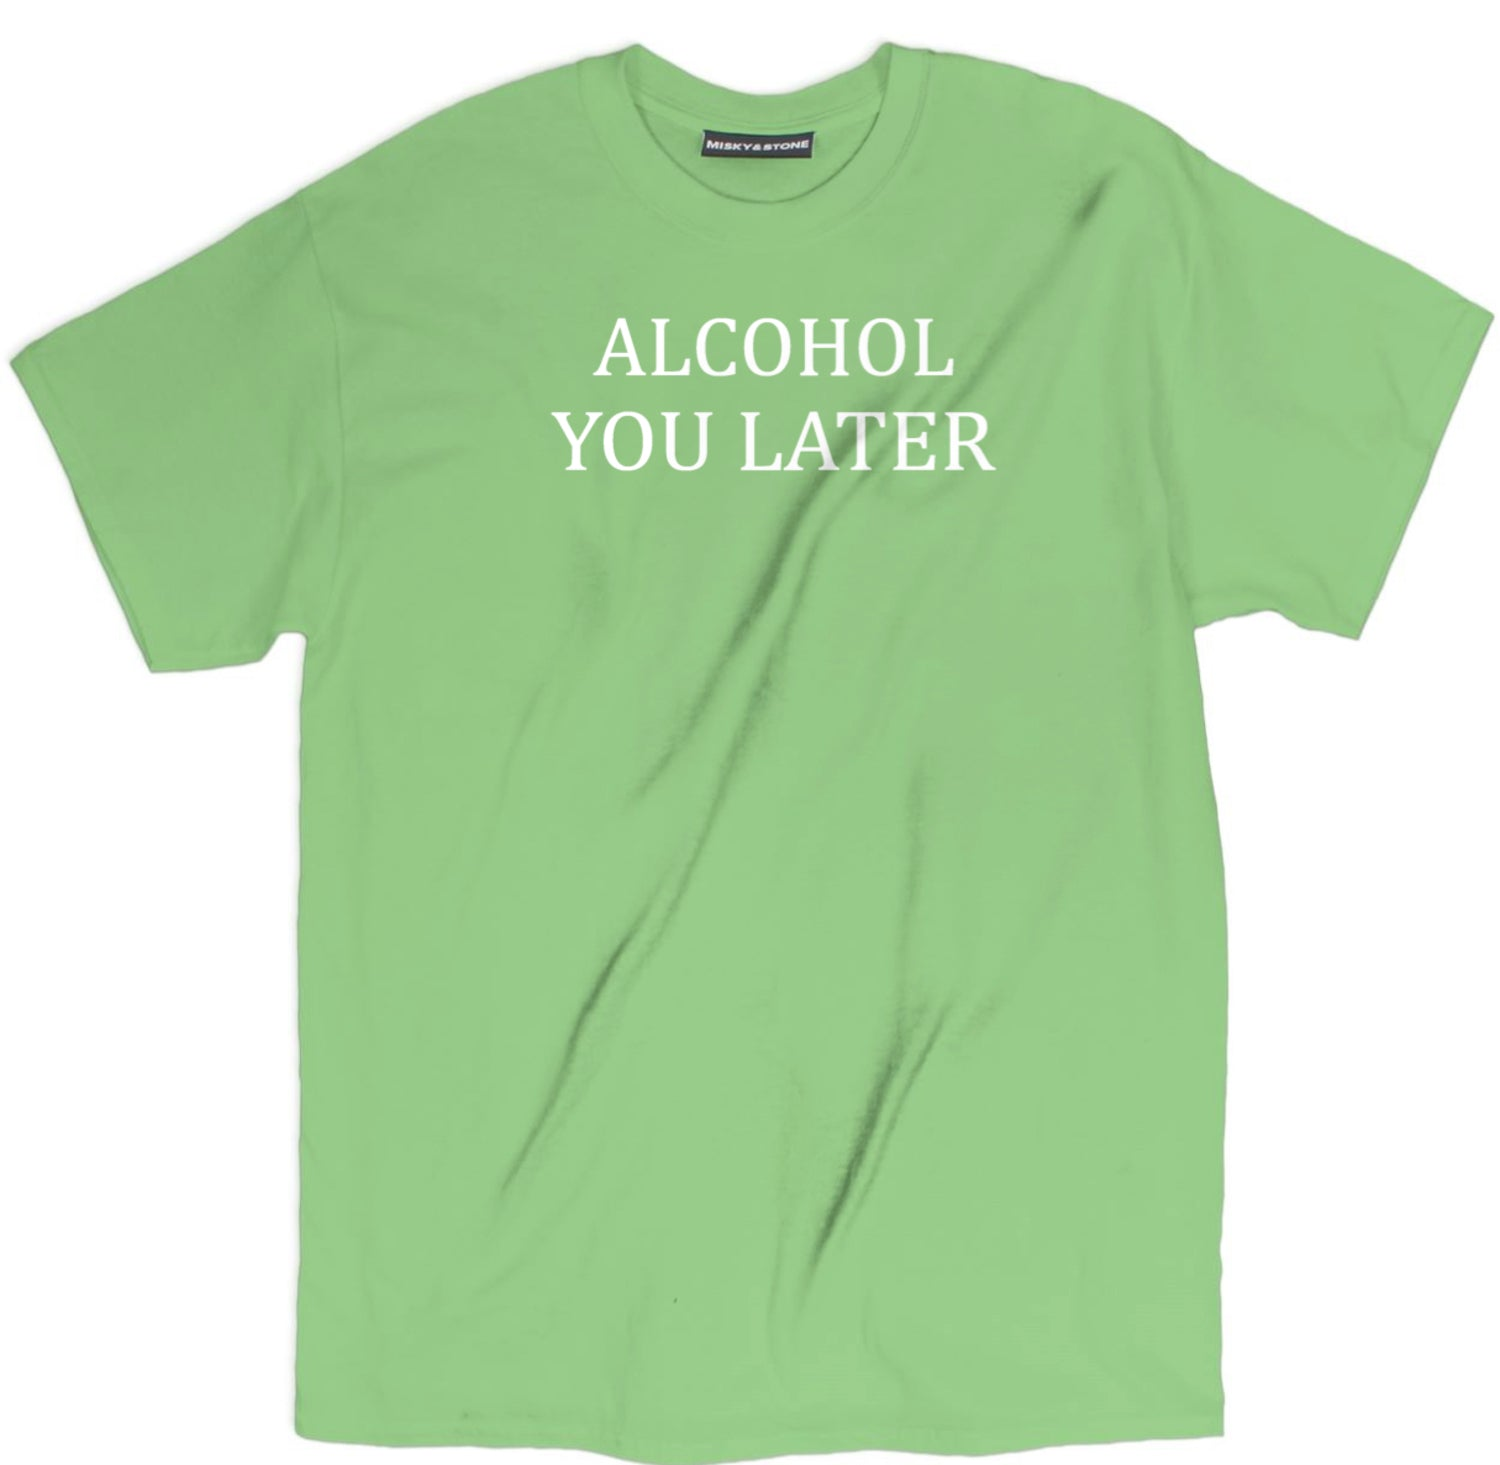 alcohol you later shirt, alcohol you later t shirt, drunk shirts, drunk t shirts, funny drunk shirts, drinking shirts, alcohol shirts, alcohol t shirts, funny drinking shirts,